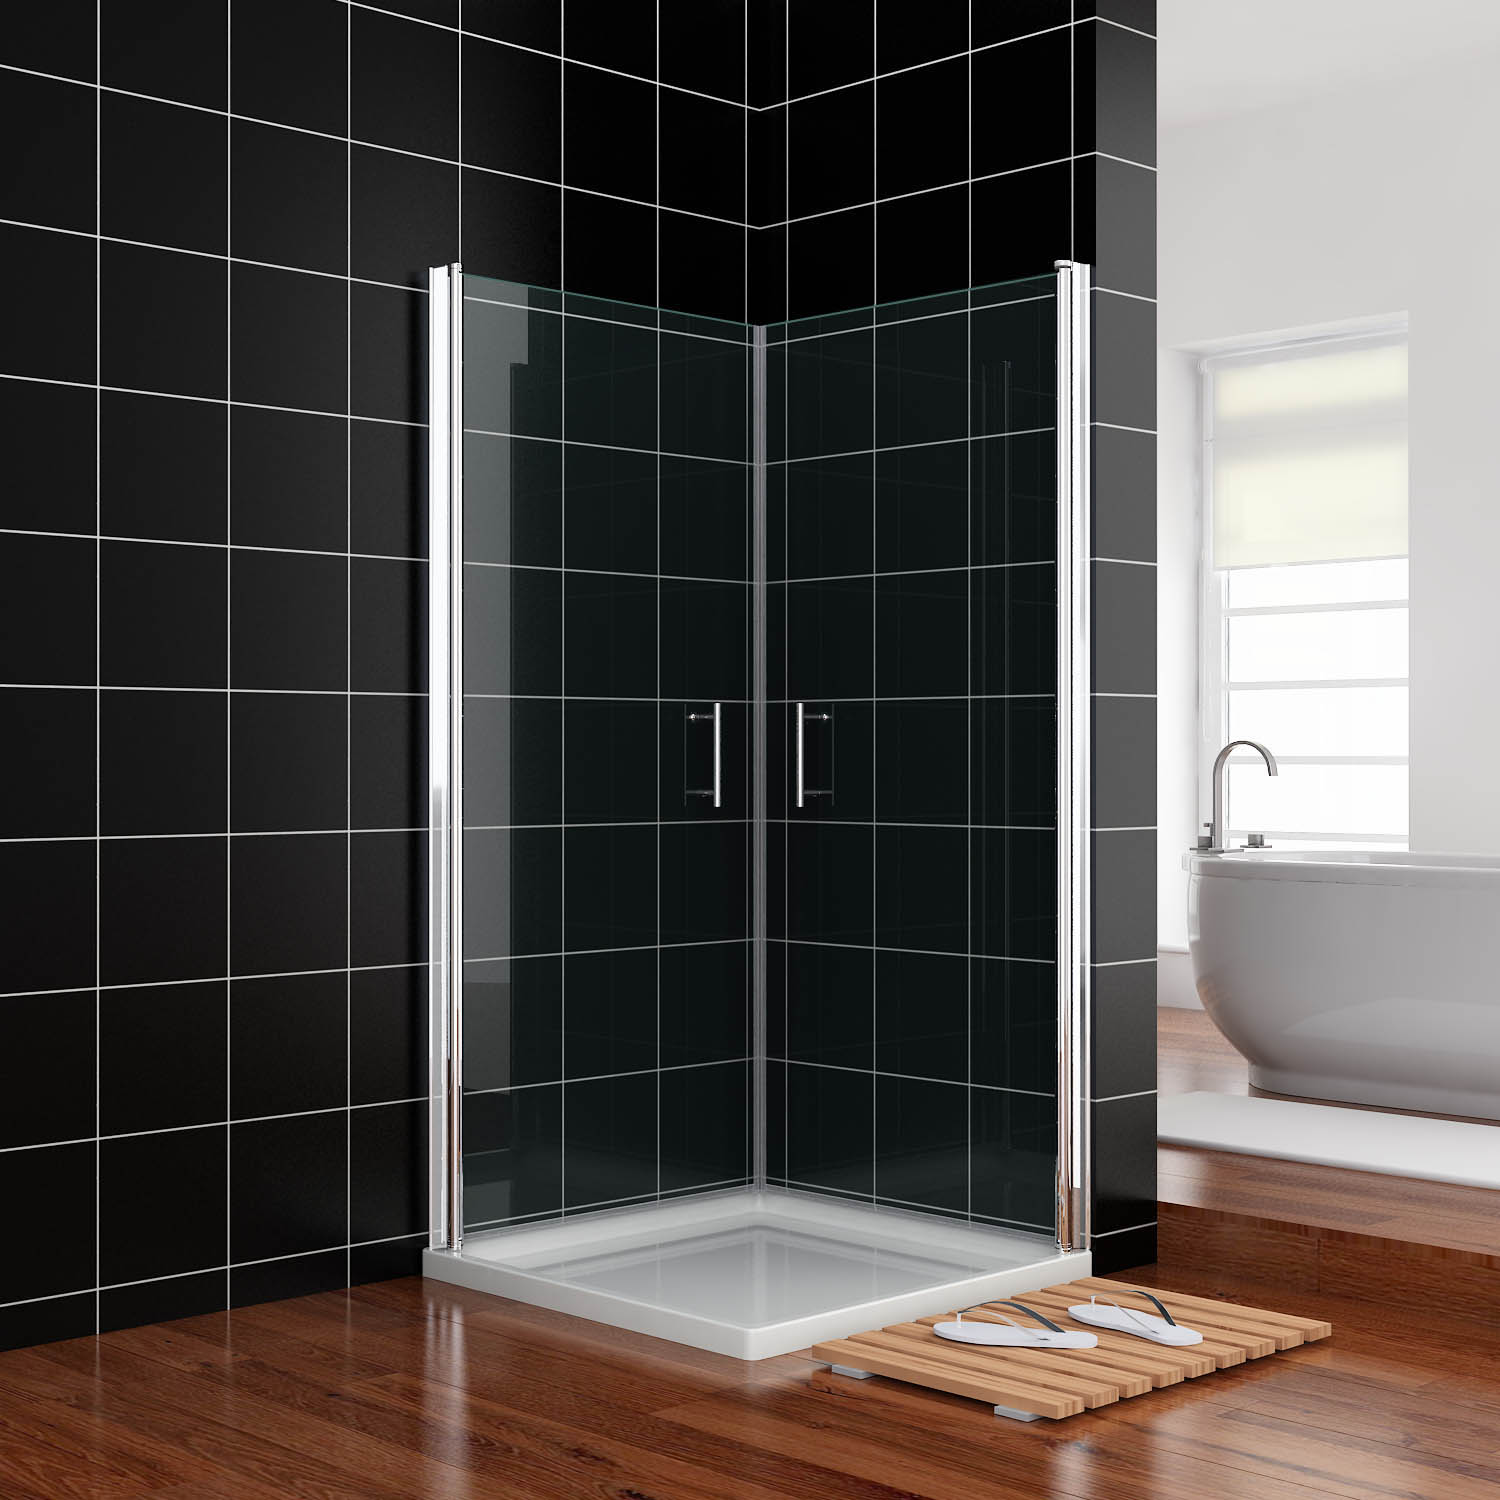 Details About 740x740mm Frameless Bathroom Shower Screen Double Pivot Swing Door Wall To Wall